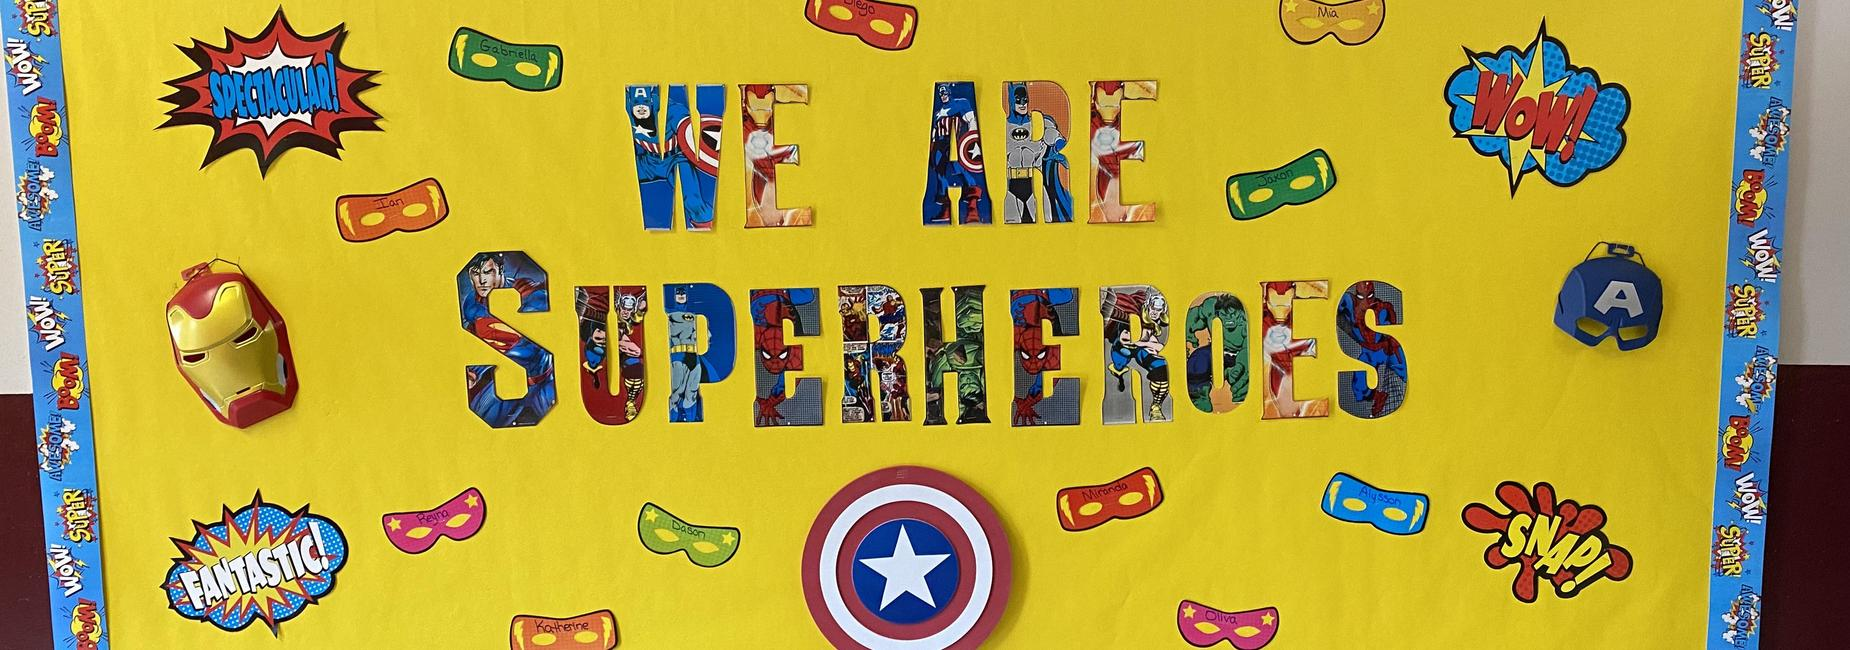 Open House 2021-2022 Board: We are Superheroes